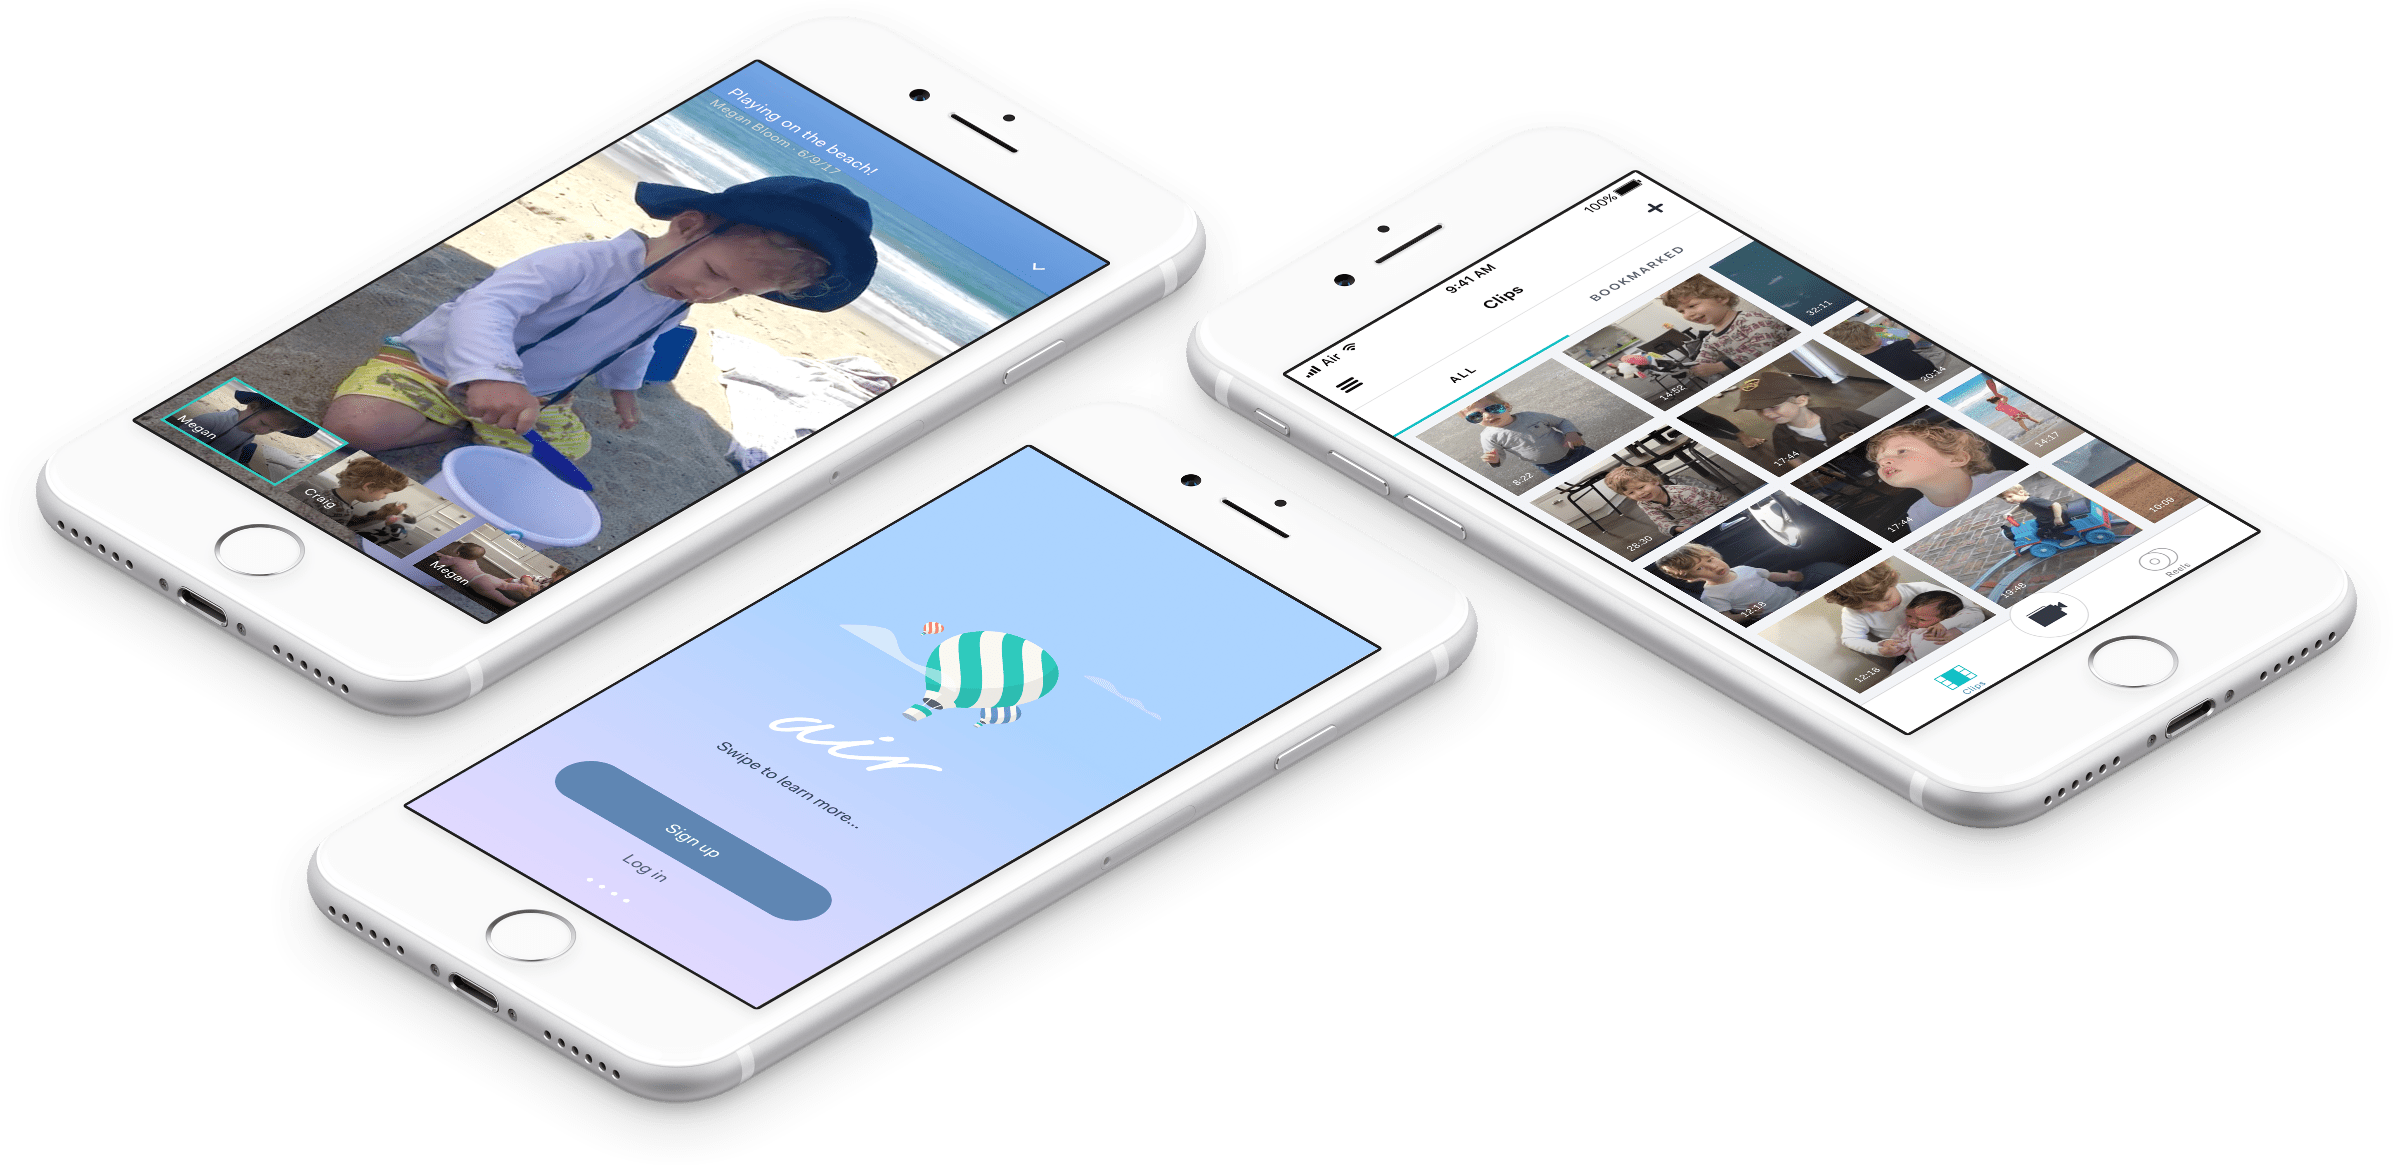 air lets you record high-quality home movies without running out of